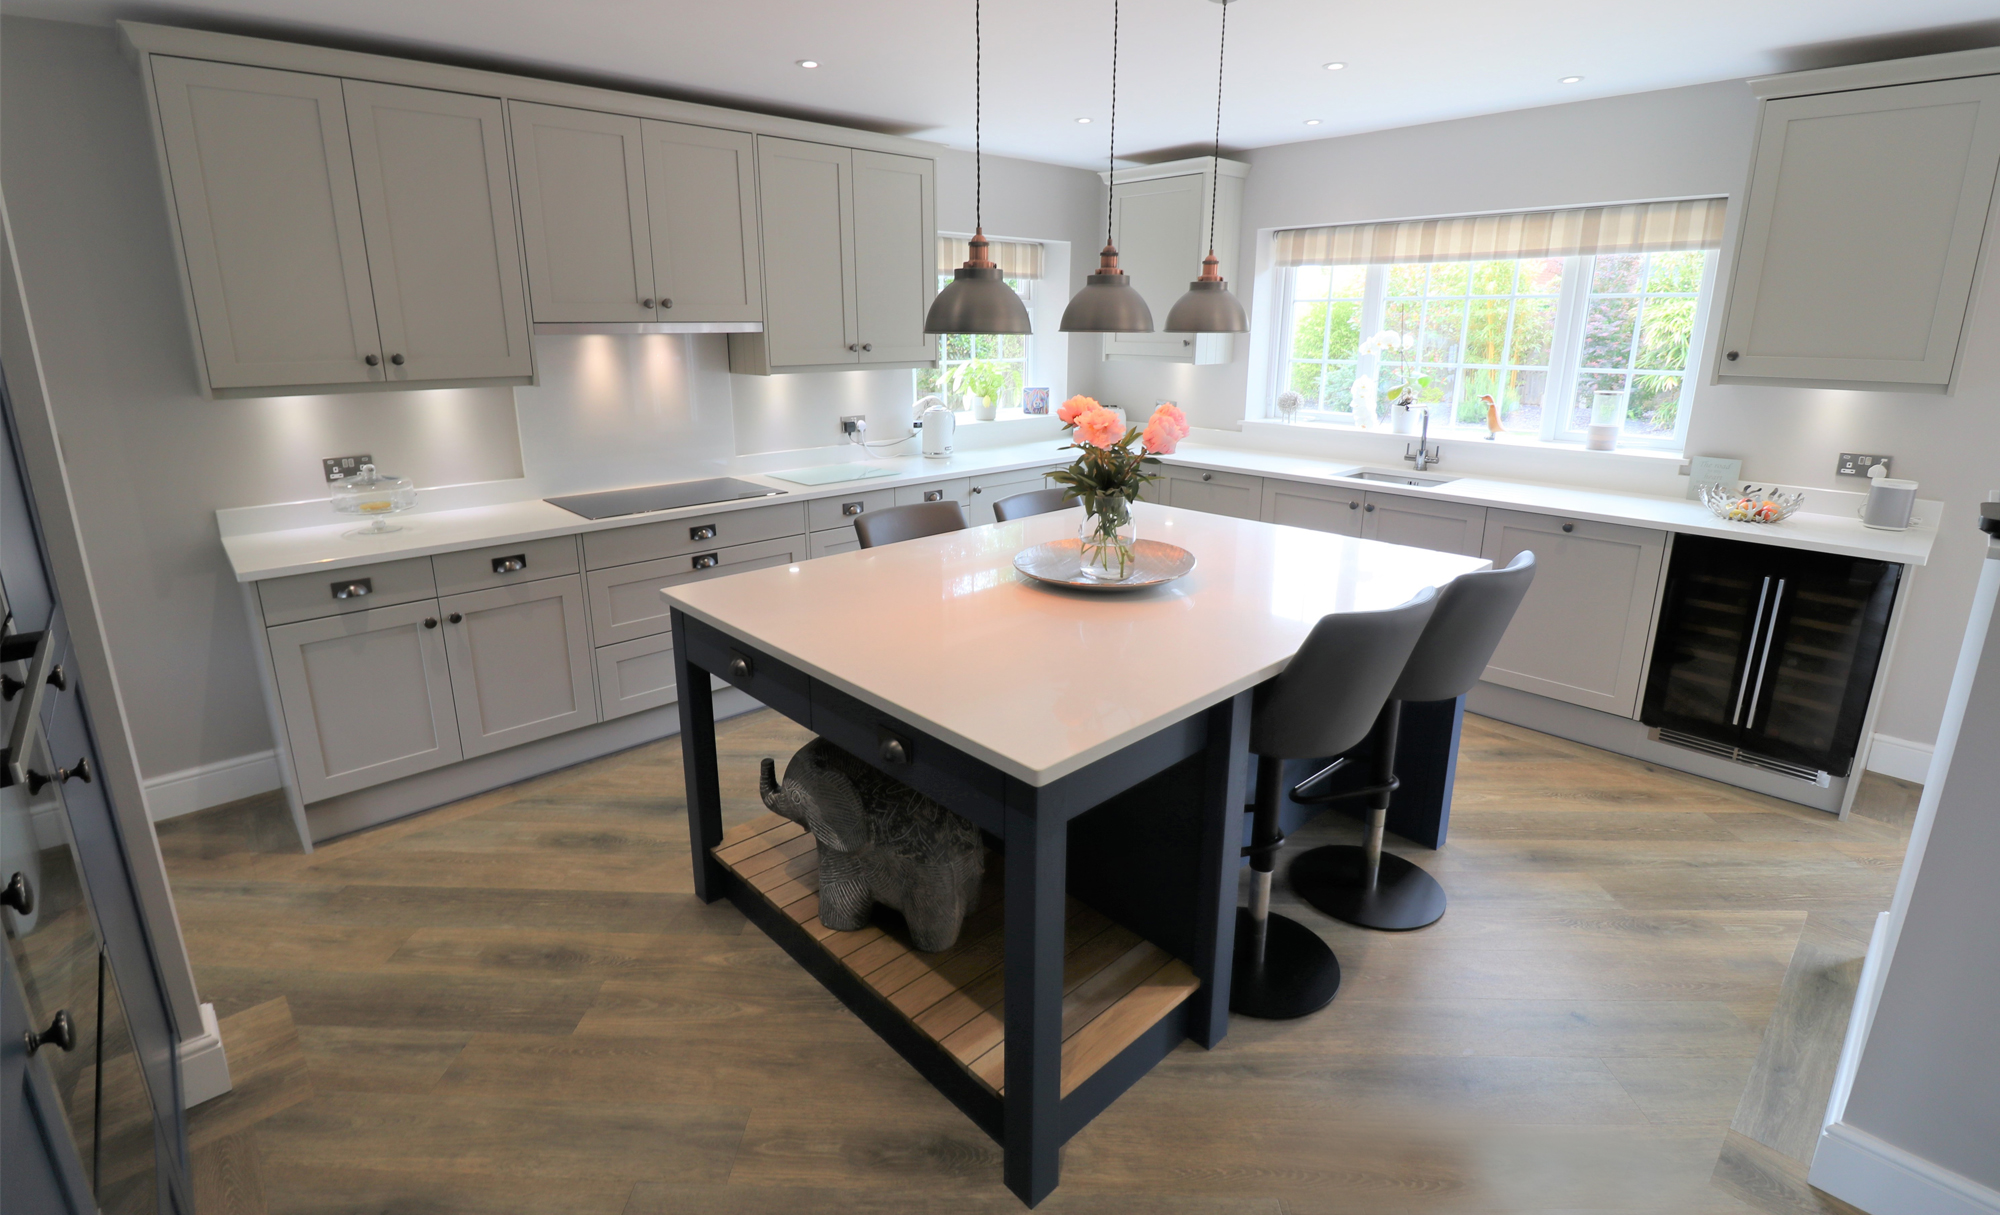 Aldana Painted Stone and Parisian Blue Kitchen for clients in Liverpool by Purple Kitchens